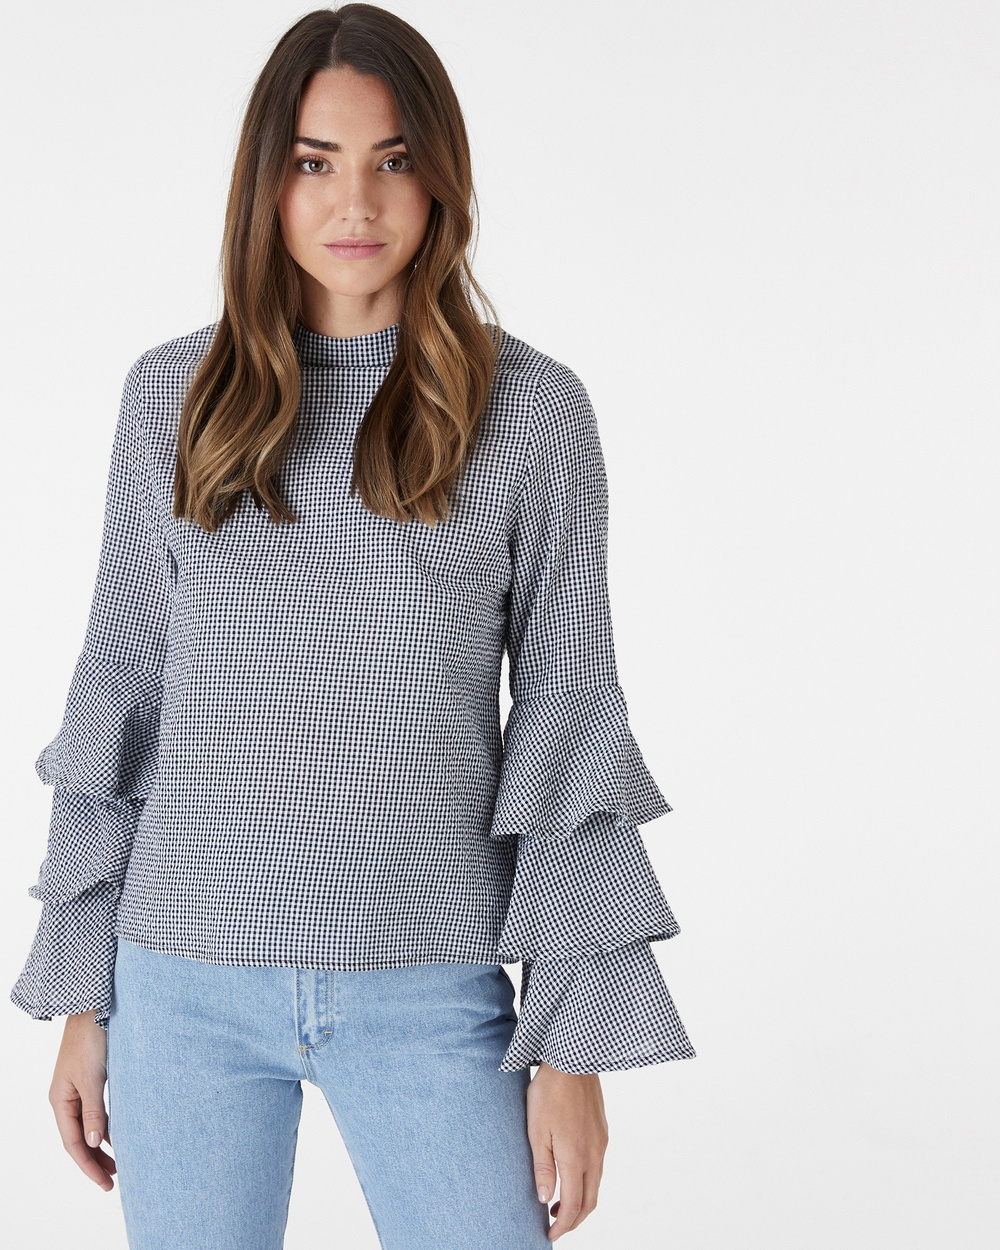 Everly Collective It Was Love Top Tops Gingham It Was Love Top